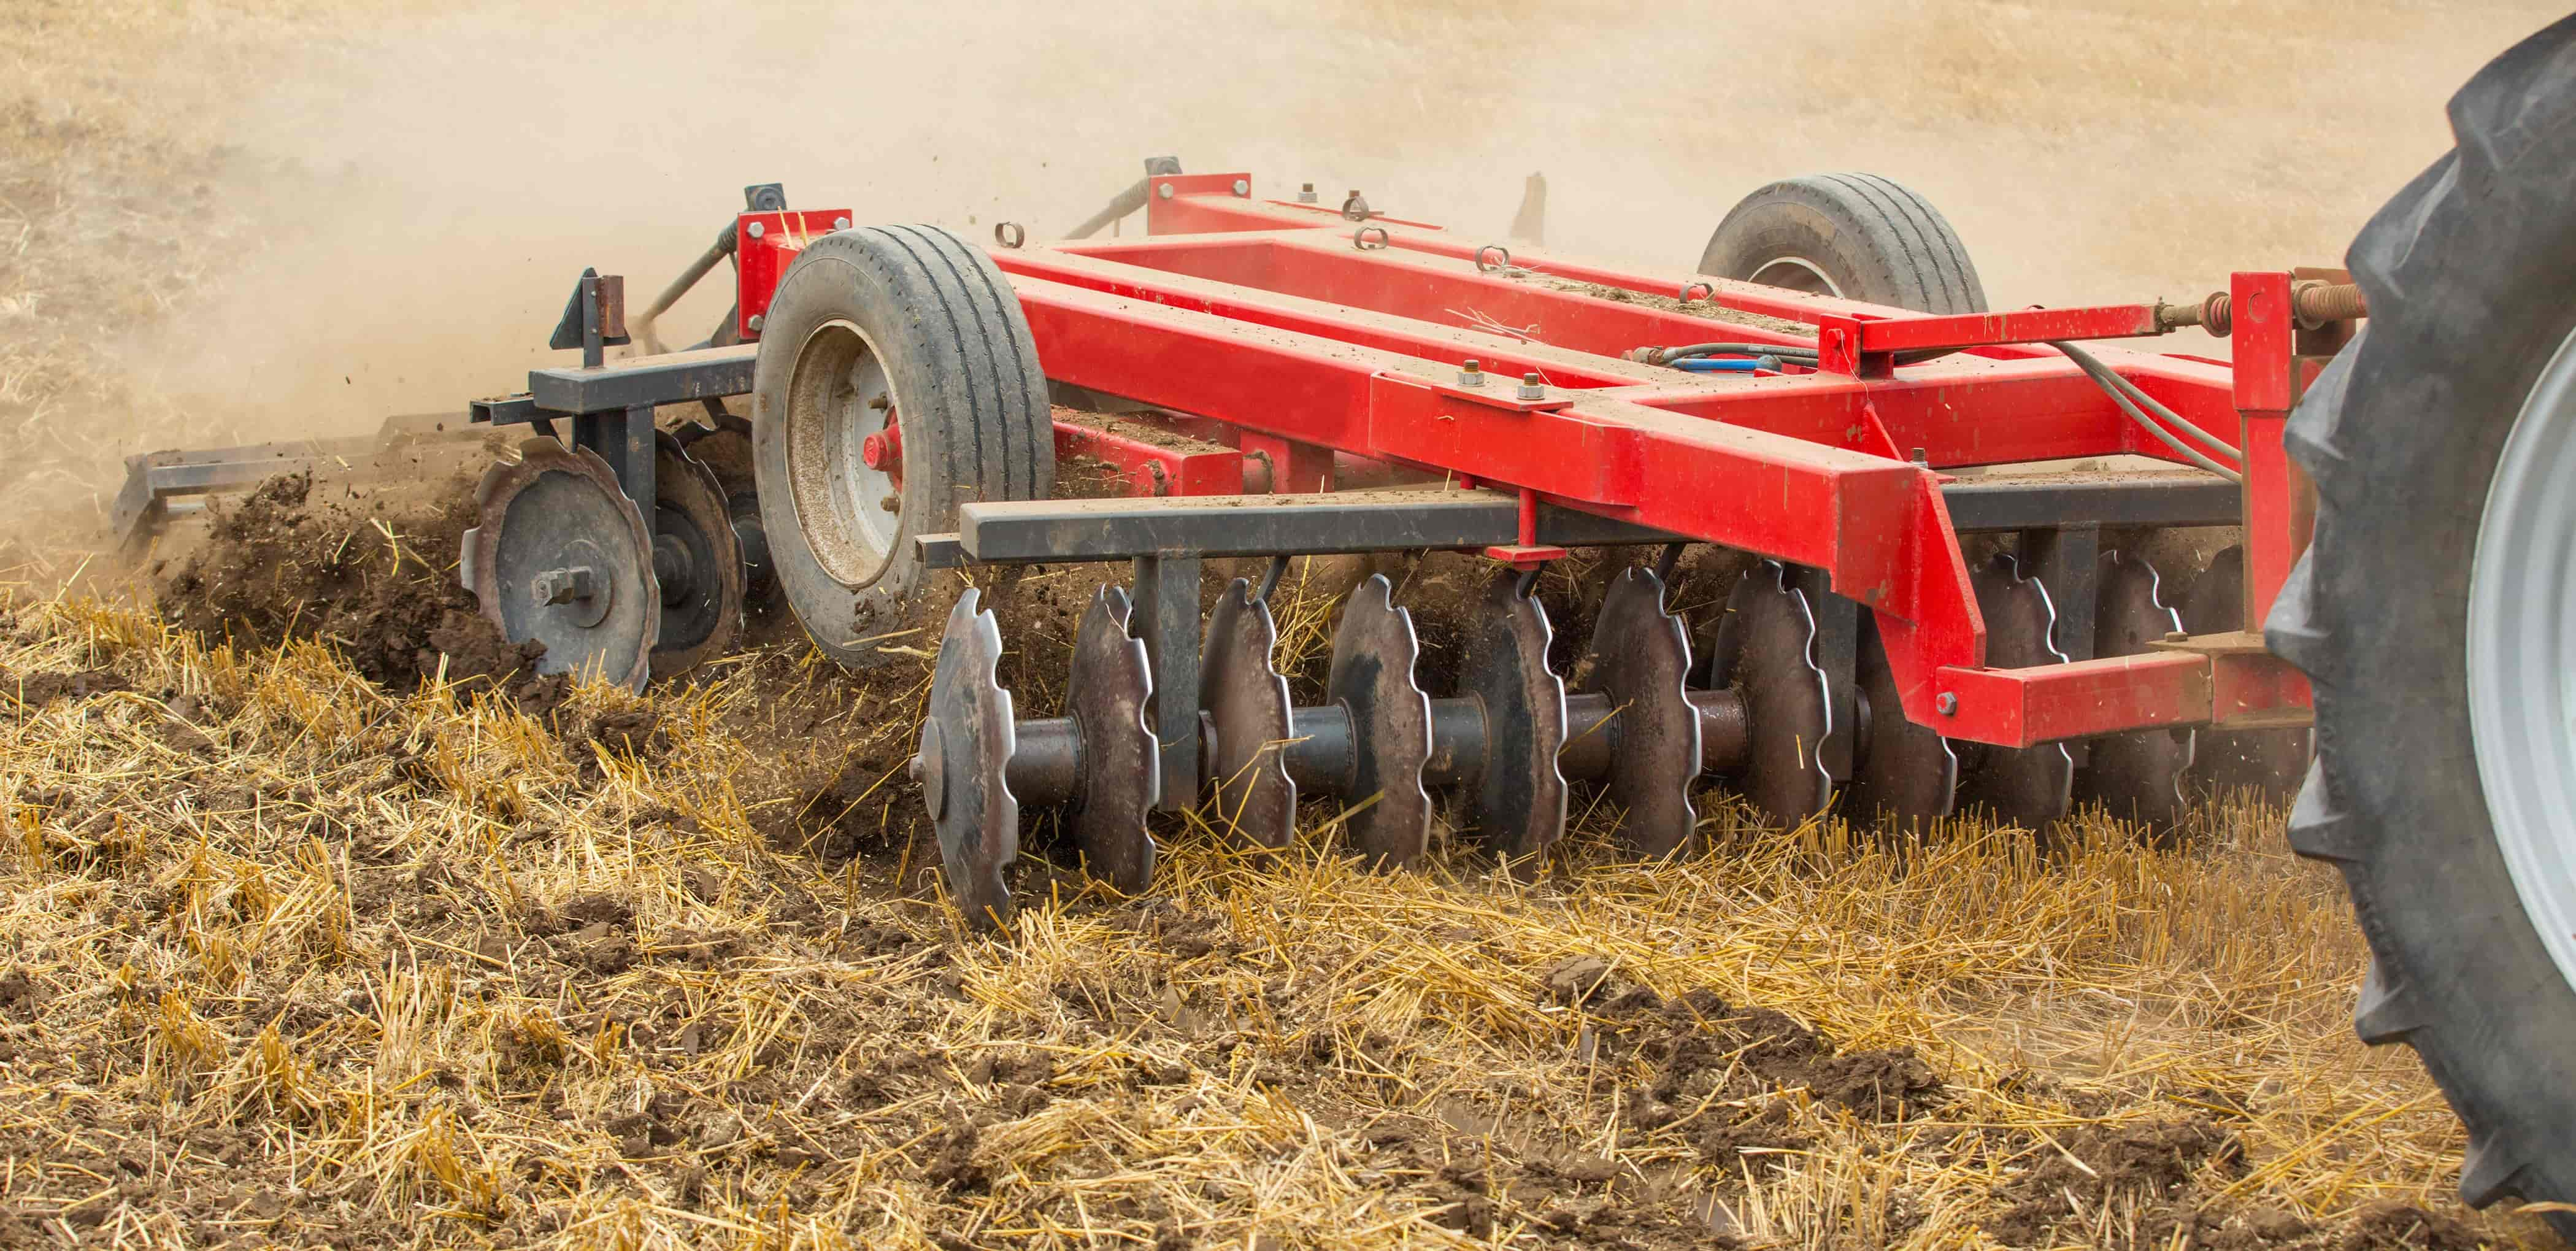 How to make soil fertile with Crop Residue Management?